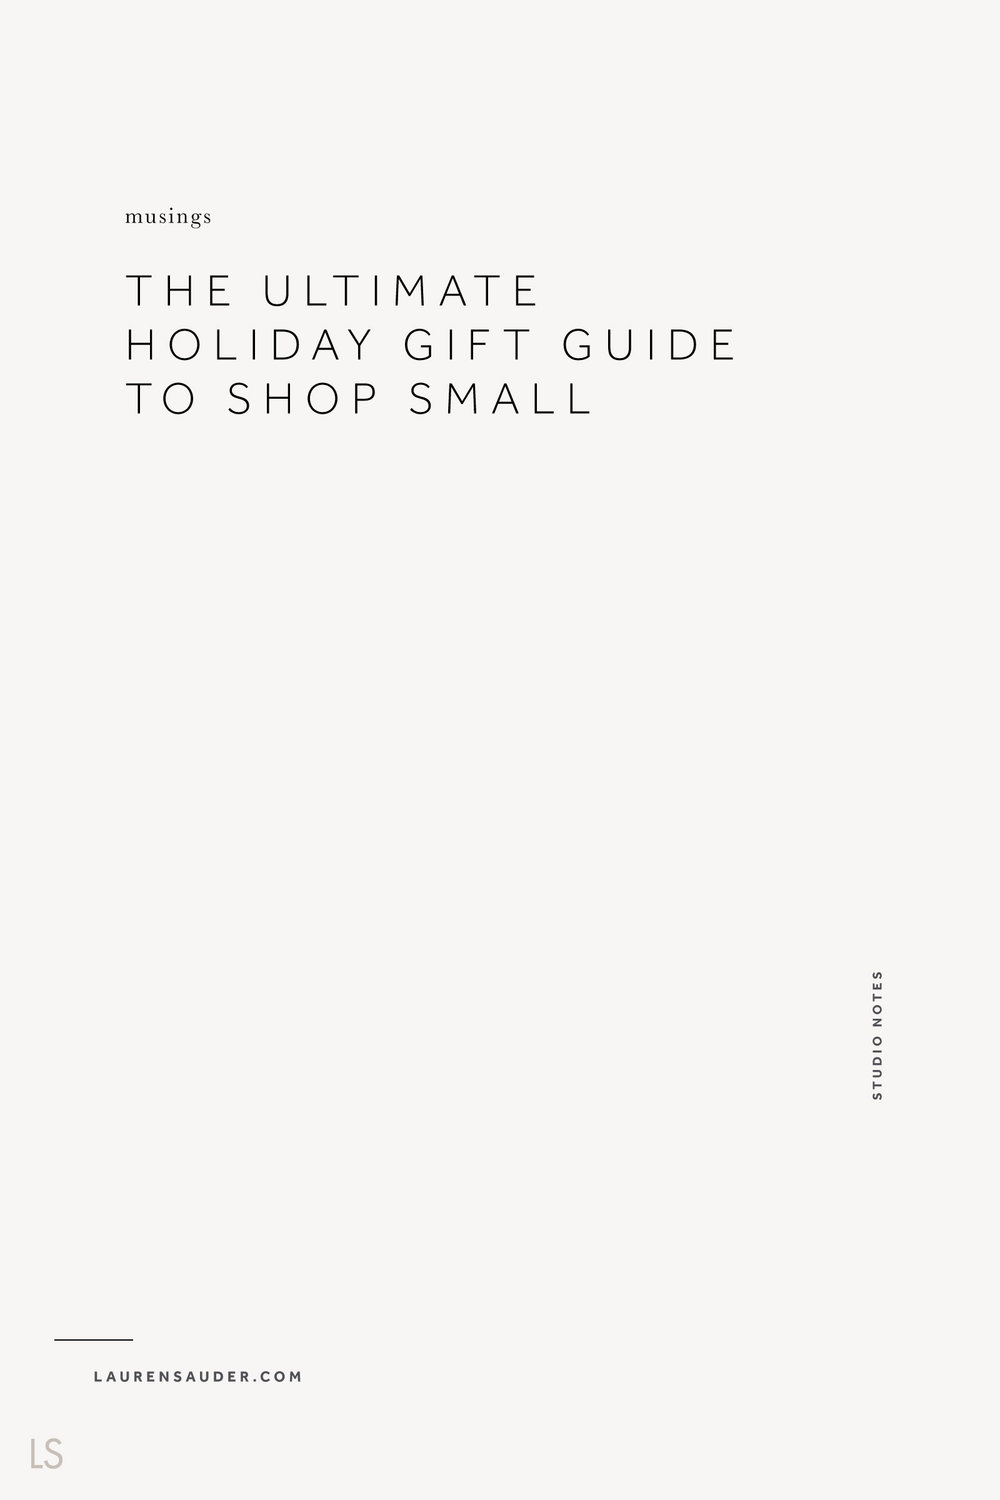 The Ultimate Holiday Gift Guide to Shop Small : Handmade Popup Shop, shop small, holiday shopping, shop local, holiday gifts from makers, holiday gift ideas, holiday gift guide